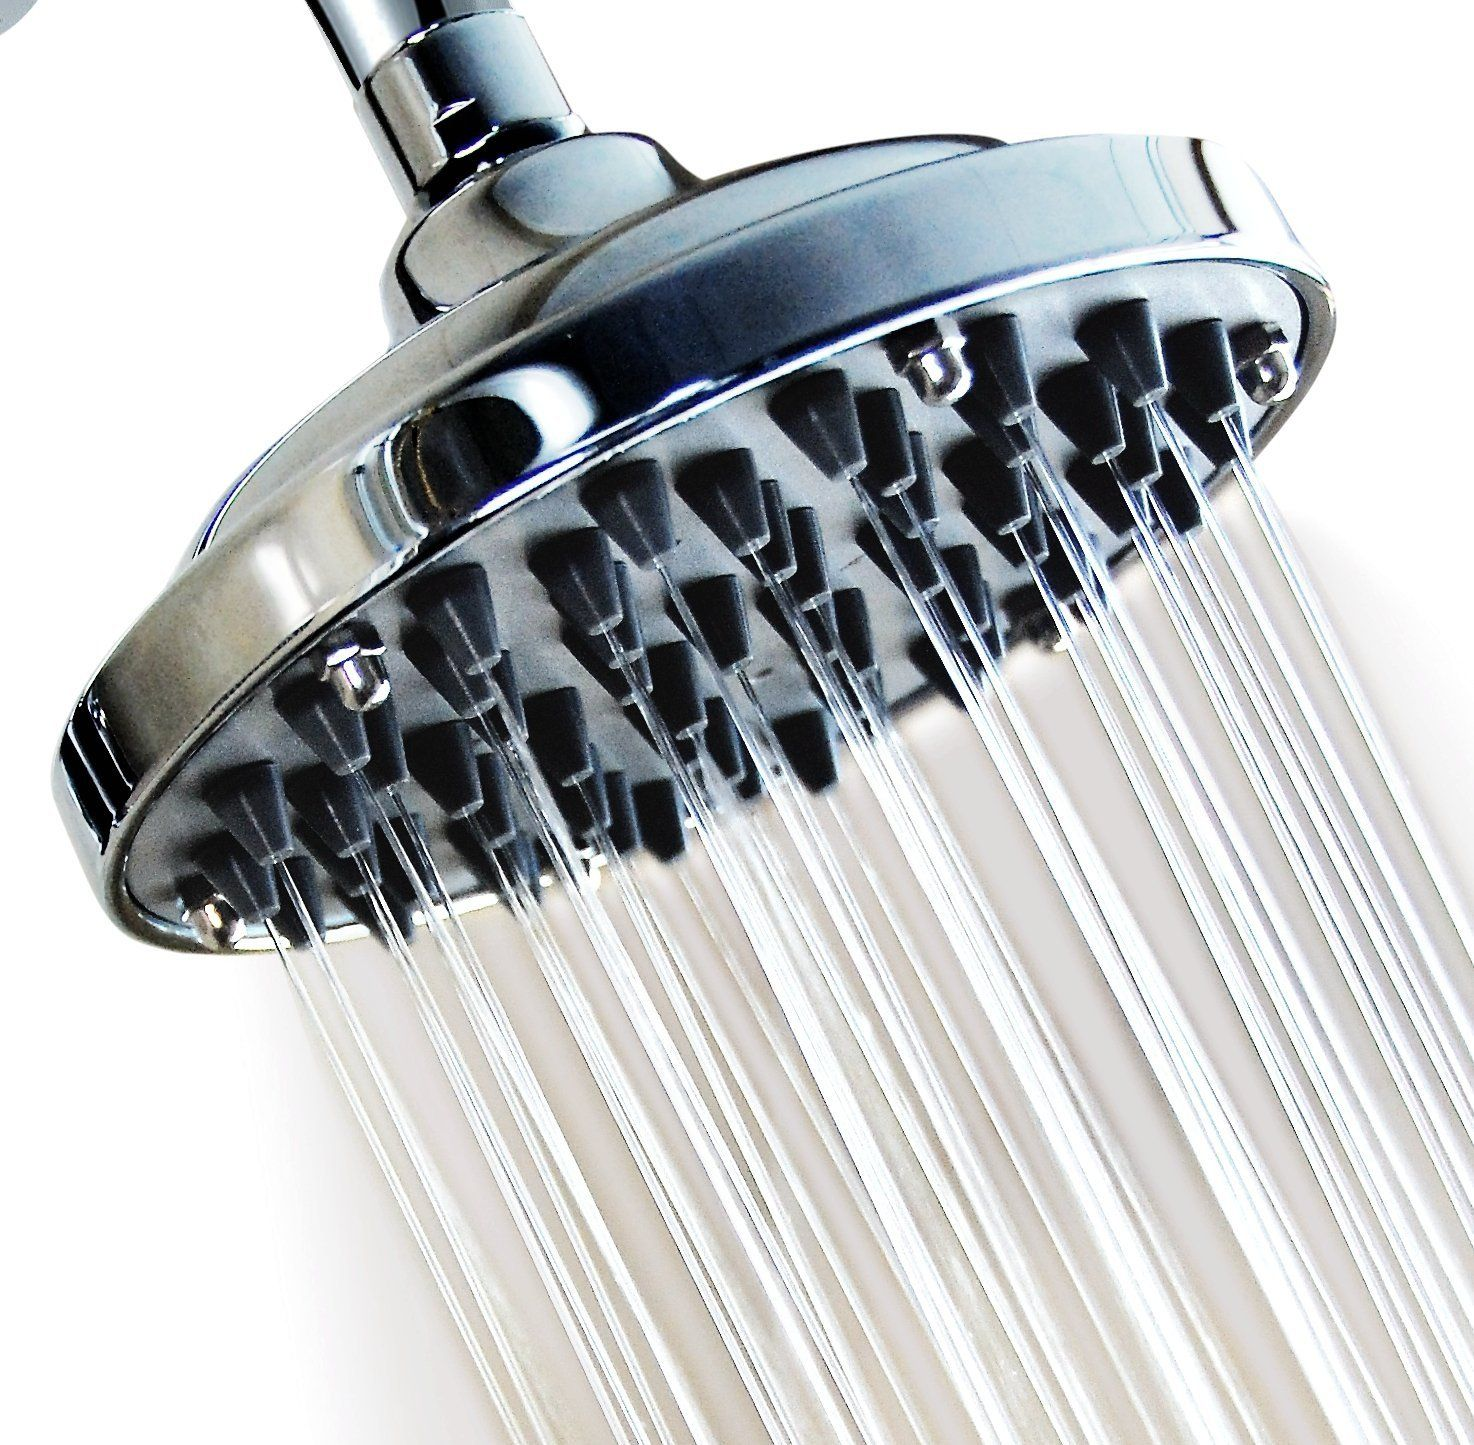 7 Best High Pressure Shower Heads For Low Water Pressure 2018